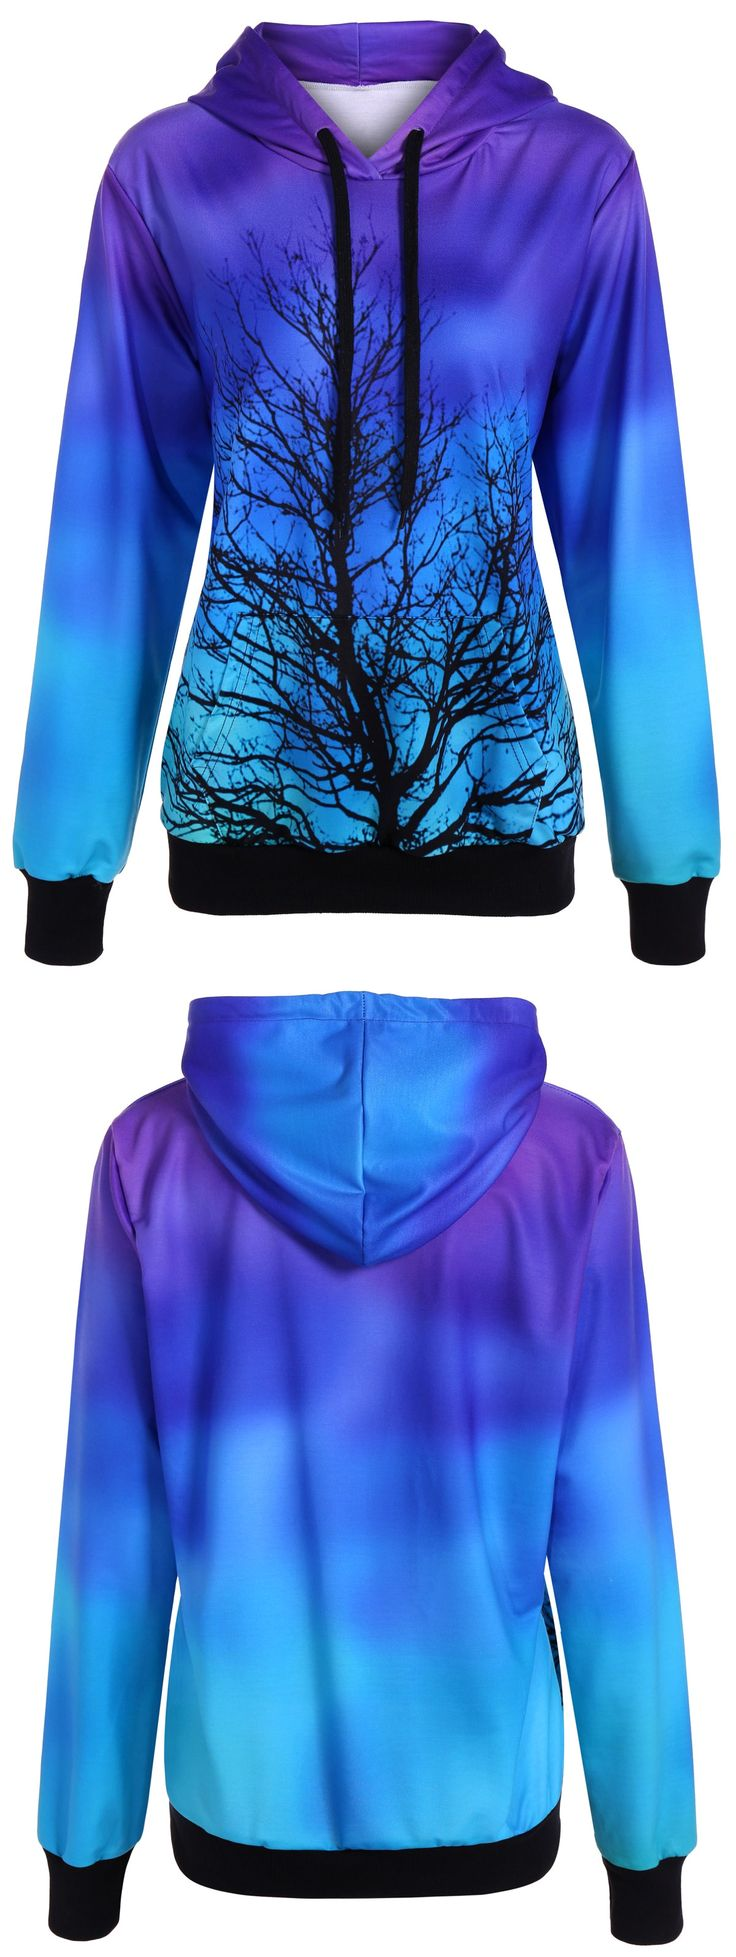 $23.61 Ombre Color Tree Pullover Hoodie I WANT IT!